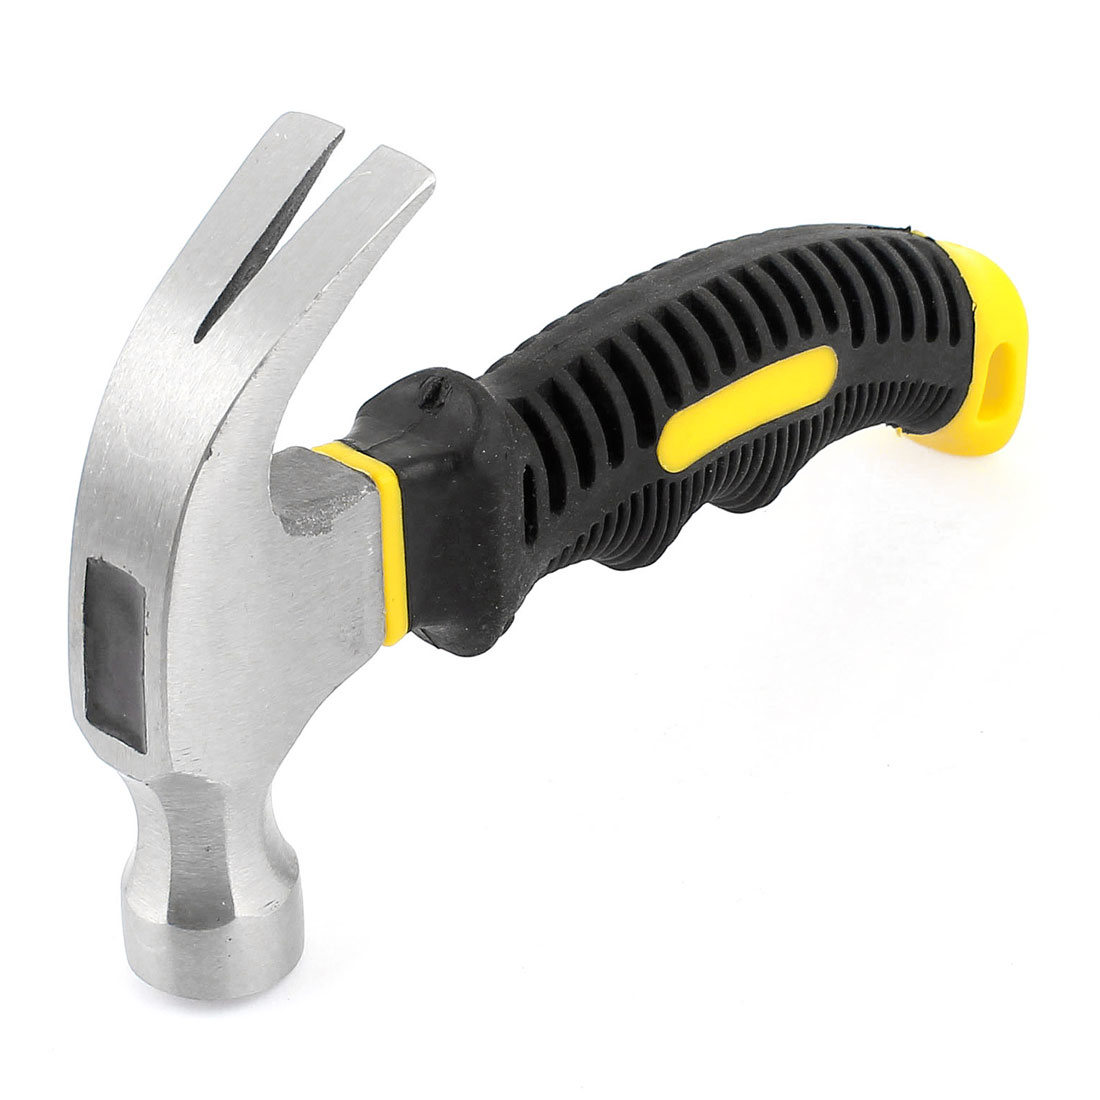 Black Yellow Soft Rubber Grip Mini Stubby Claw Hammer Nail Holder 160mm 6""